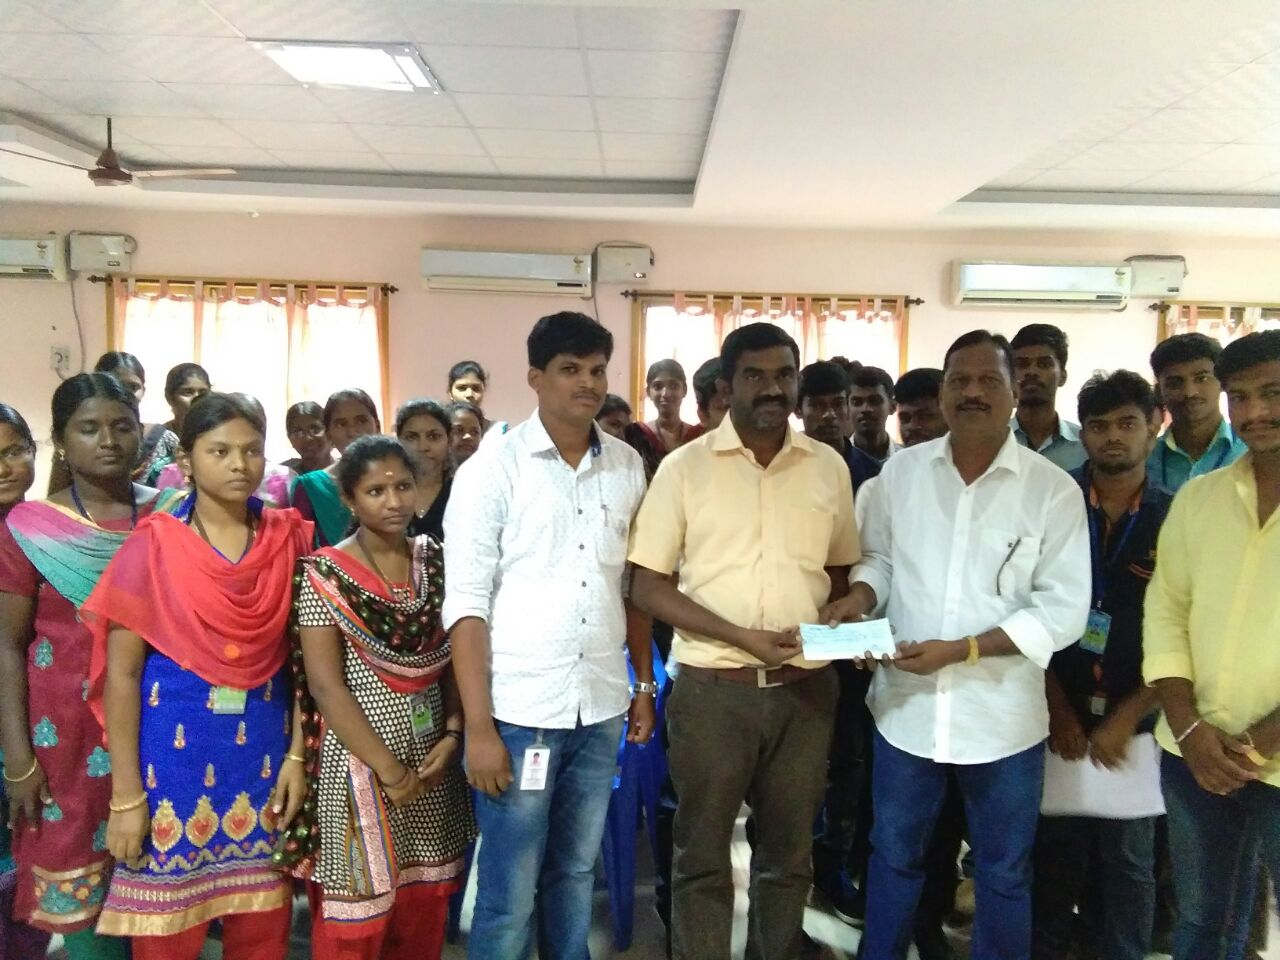 Thiru. H. Govindaraju, Trustee handing over cheque to the Director of Excel College of Engineering